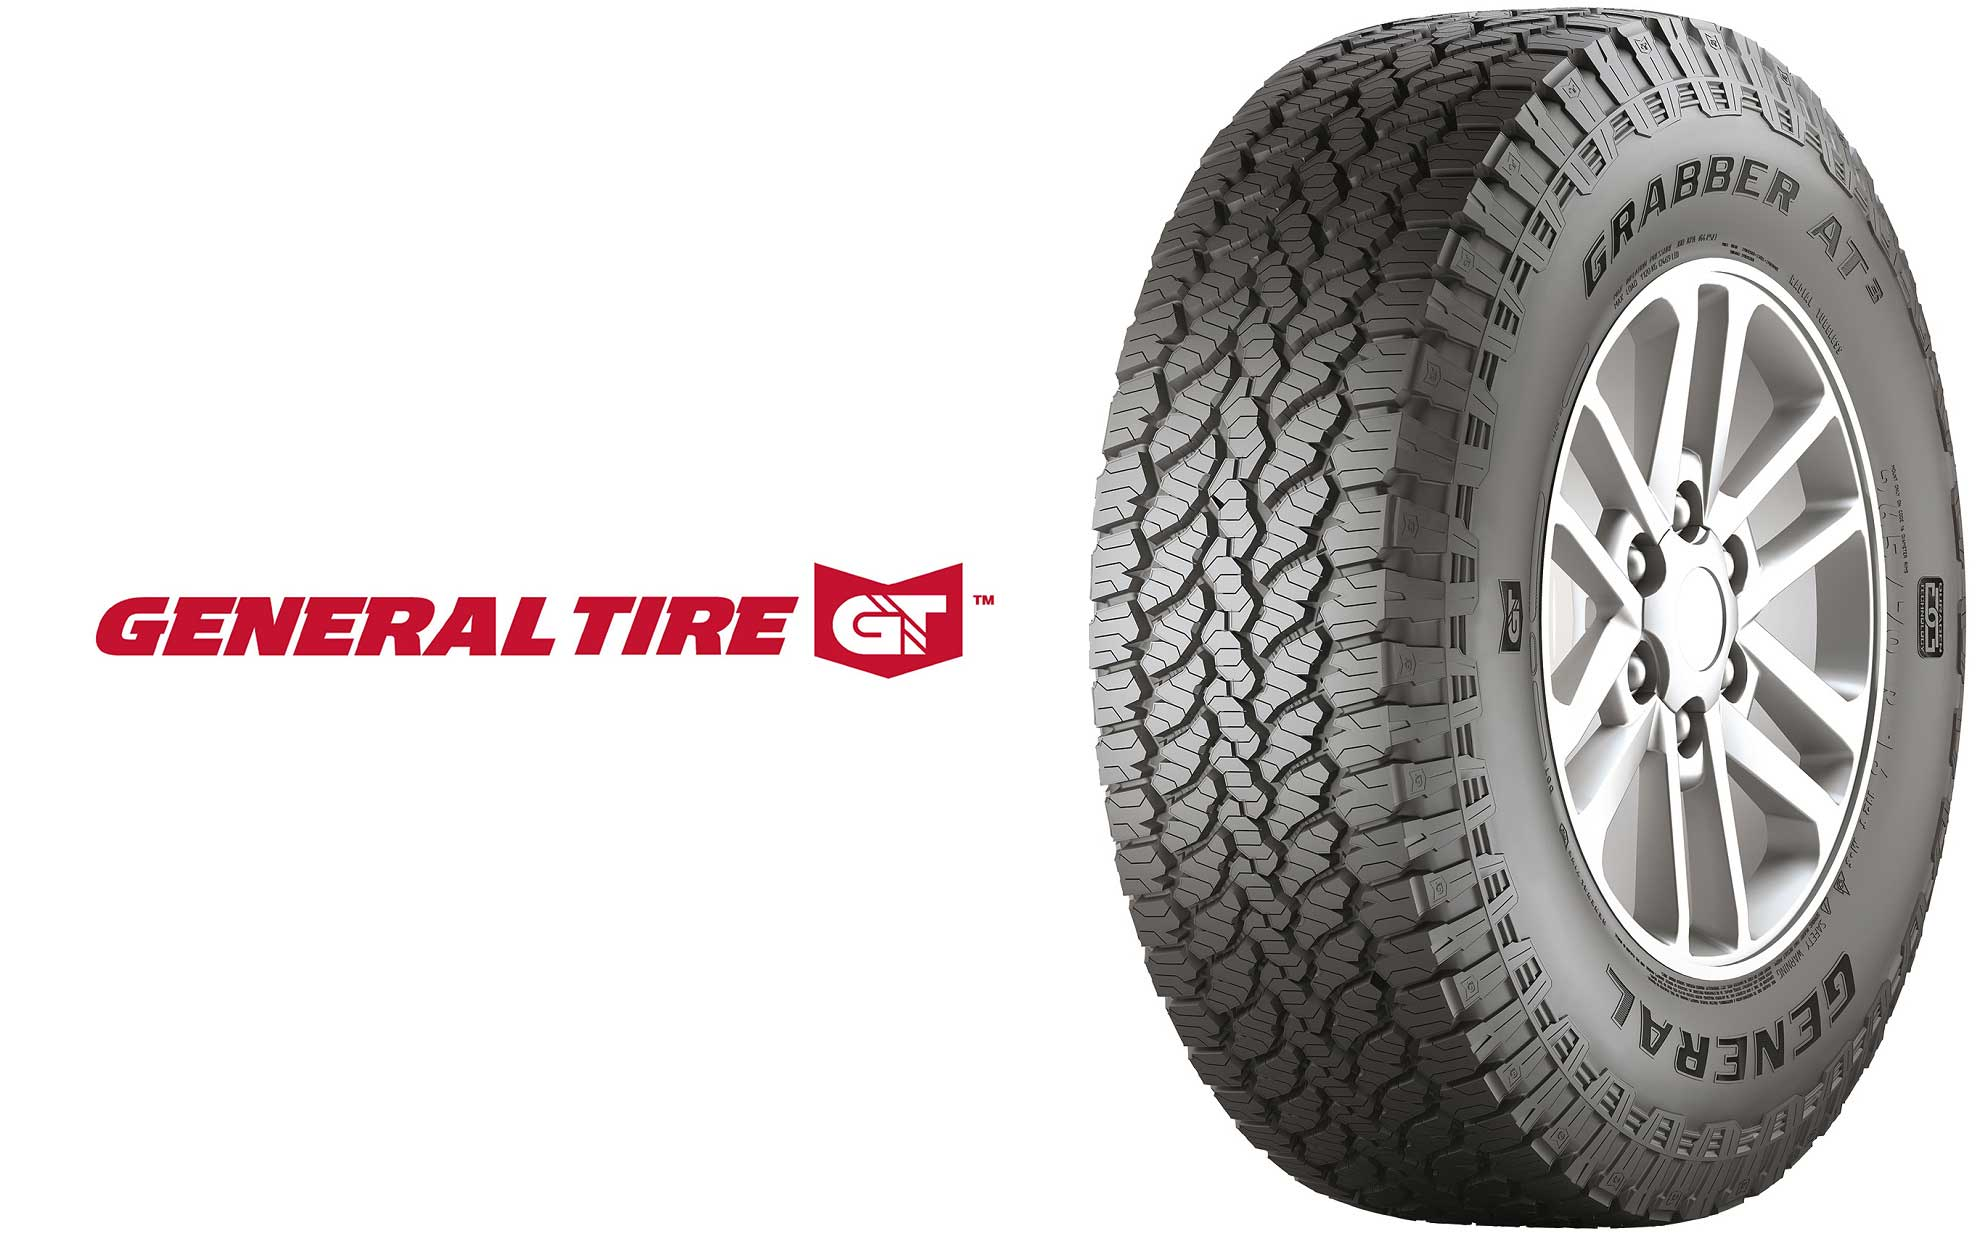 General Tire introduces new technology for its Grabber AT³ range of off-road tires